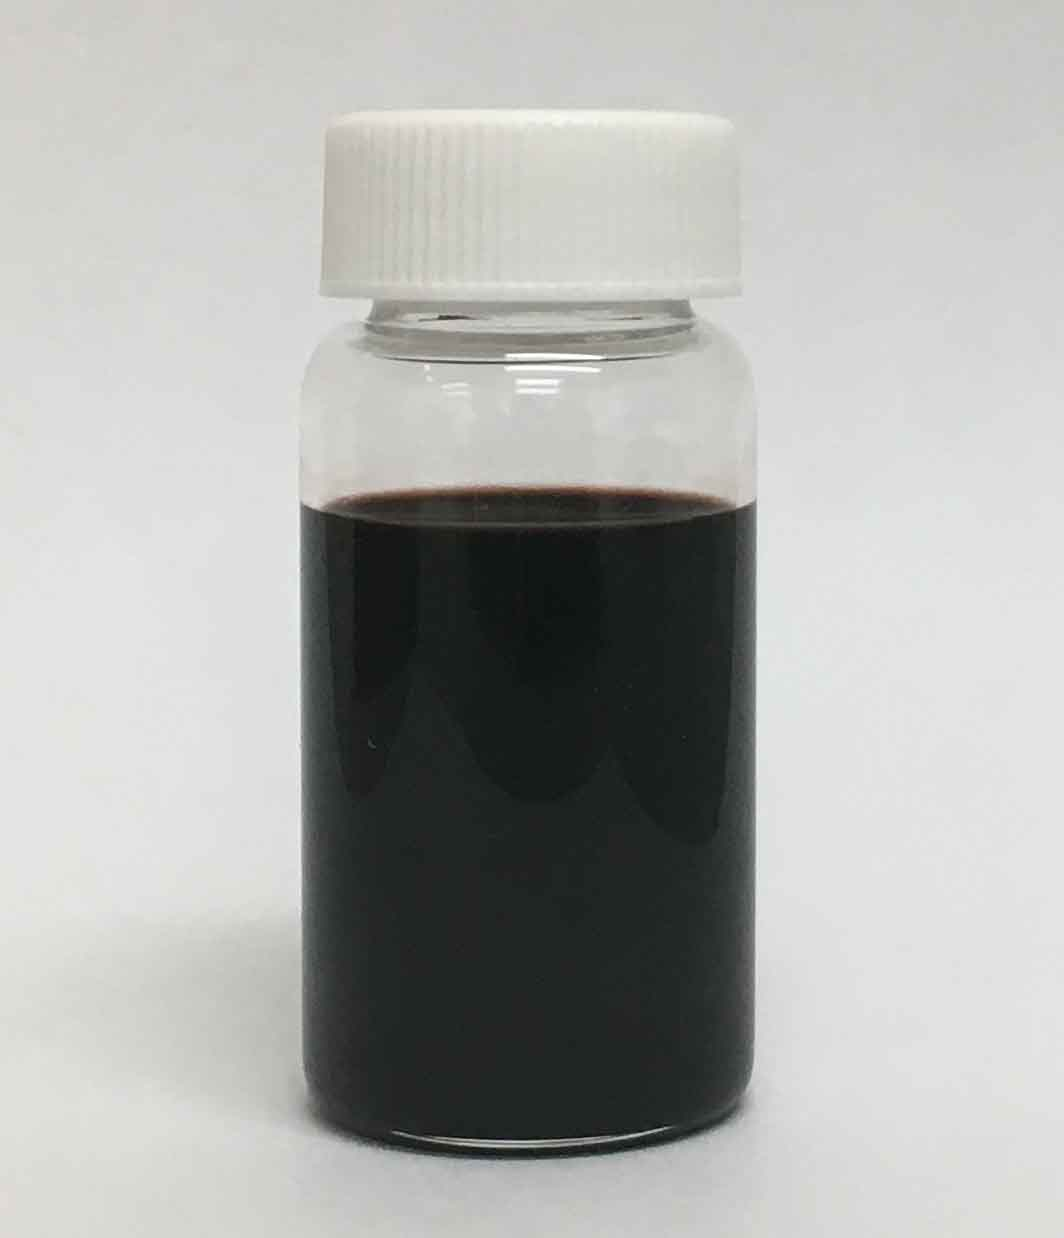 Core/Shell Quantum Dots (Au/C18)